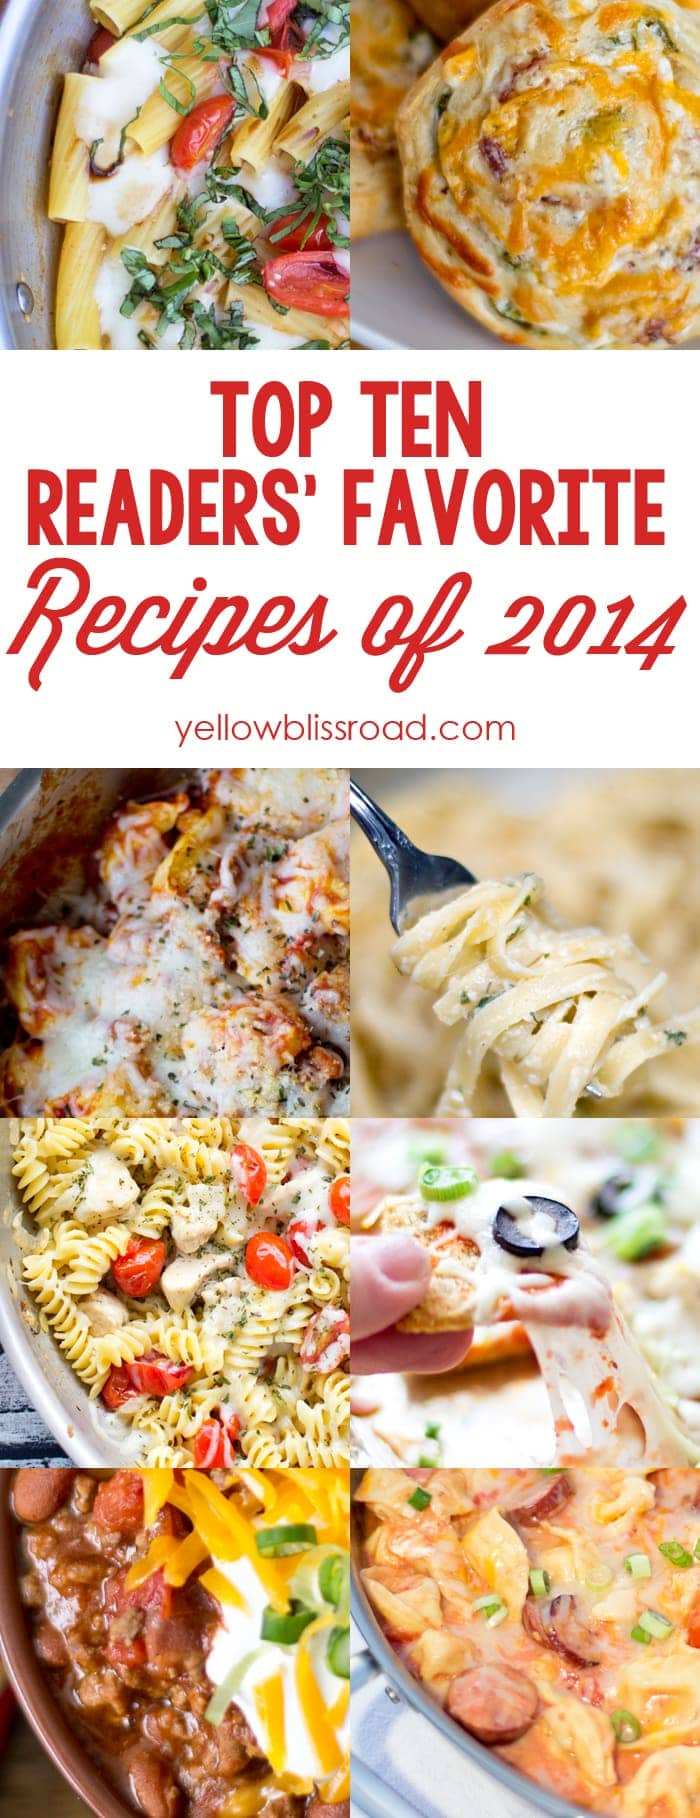 Top Ten Recipes of 2014